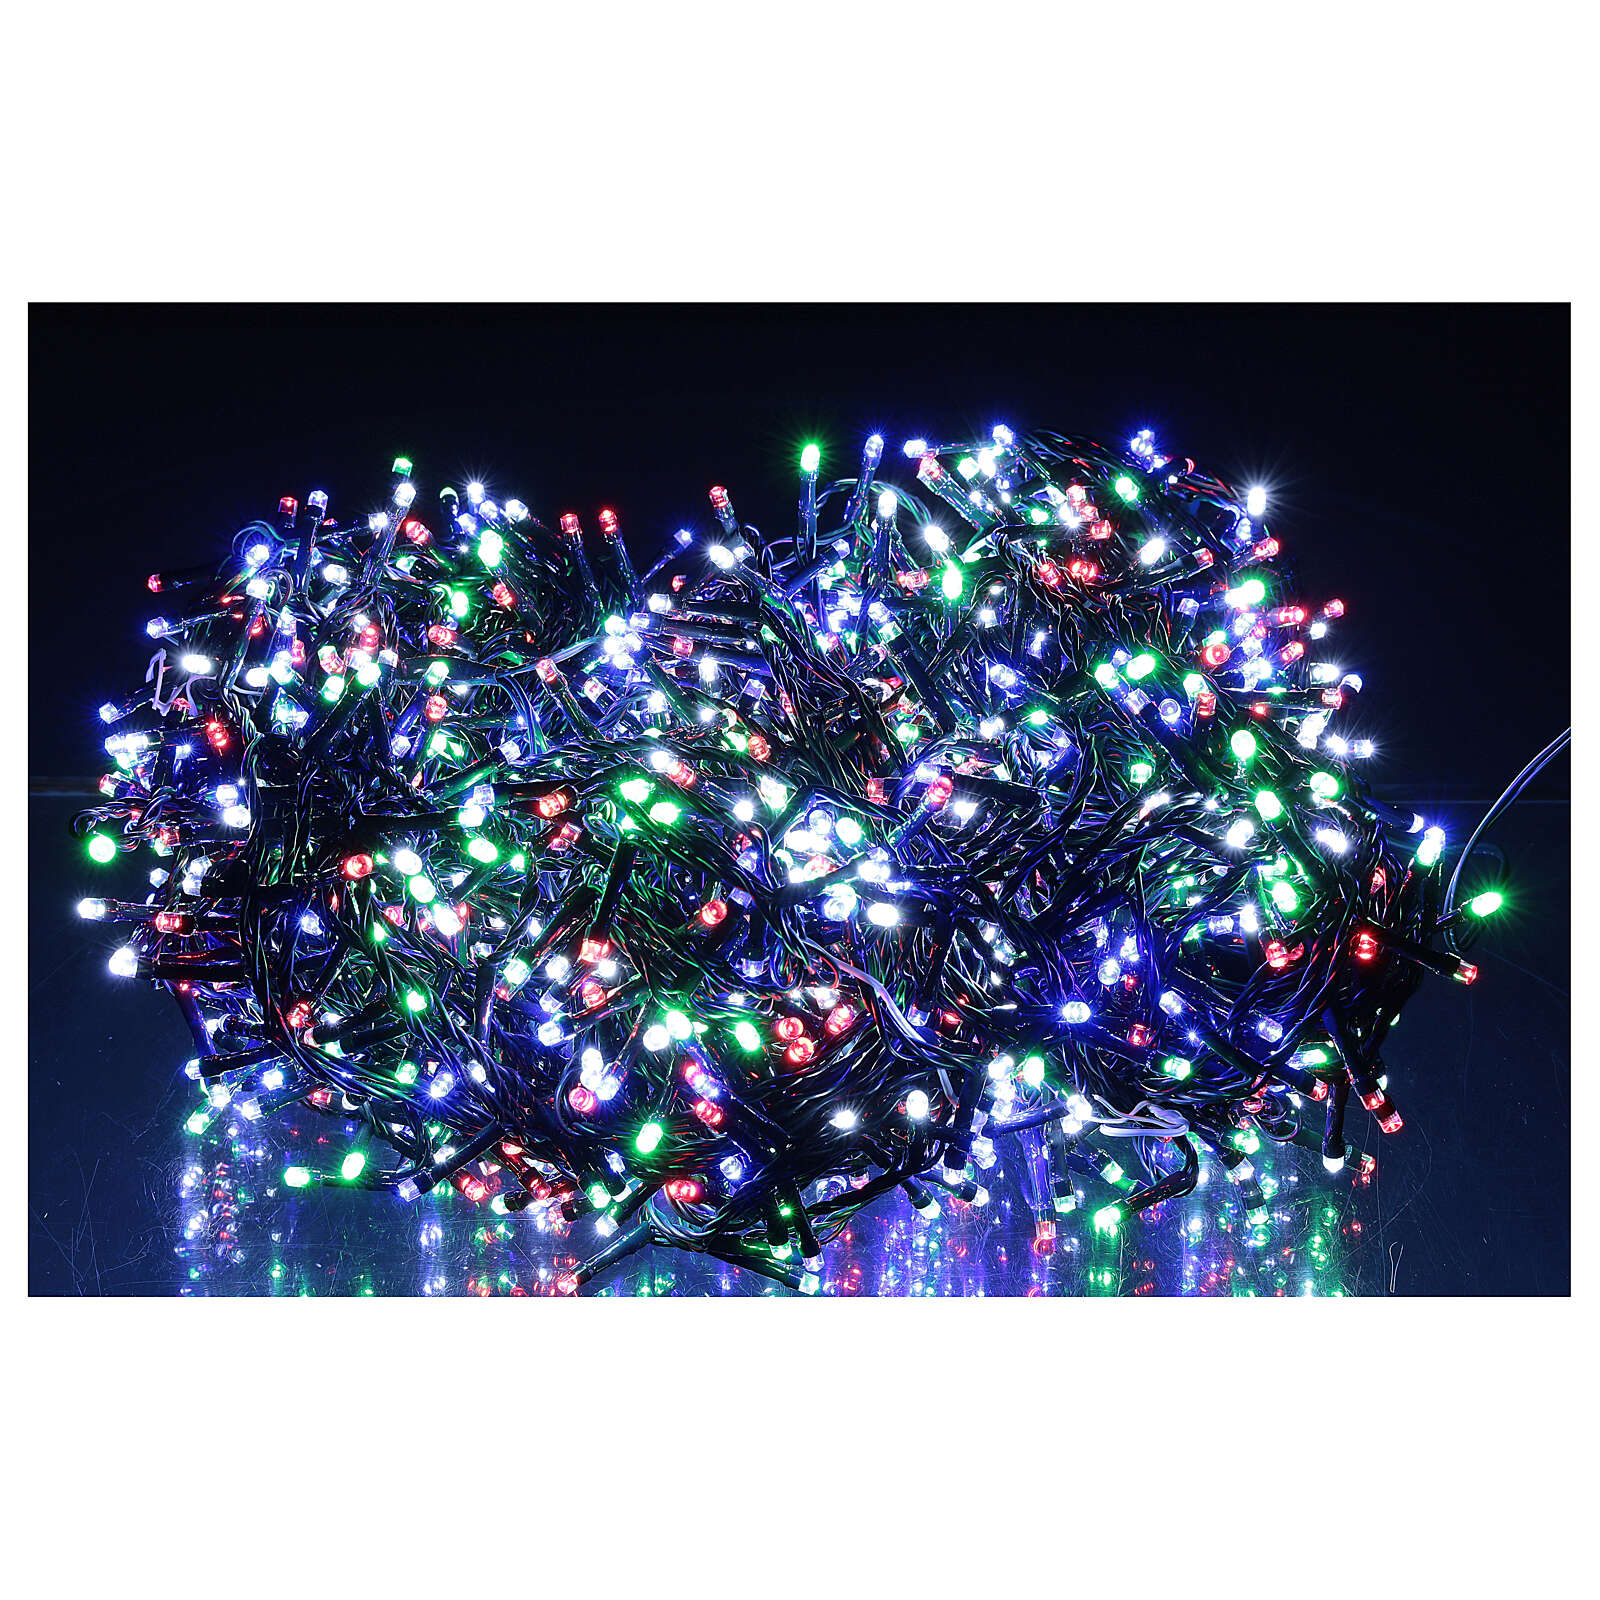 Chain lights 1500 LEDs multi color programmable light show 220V 3